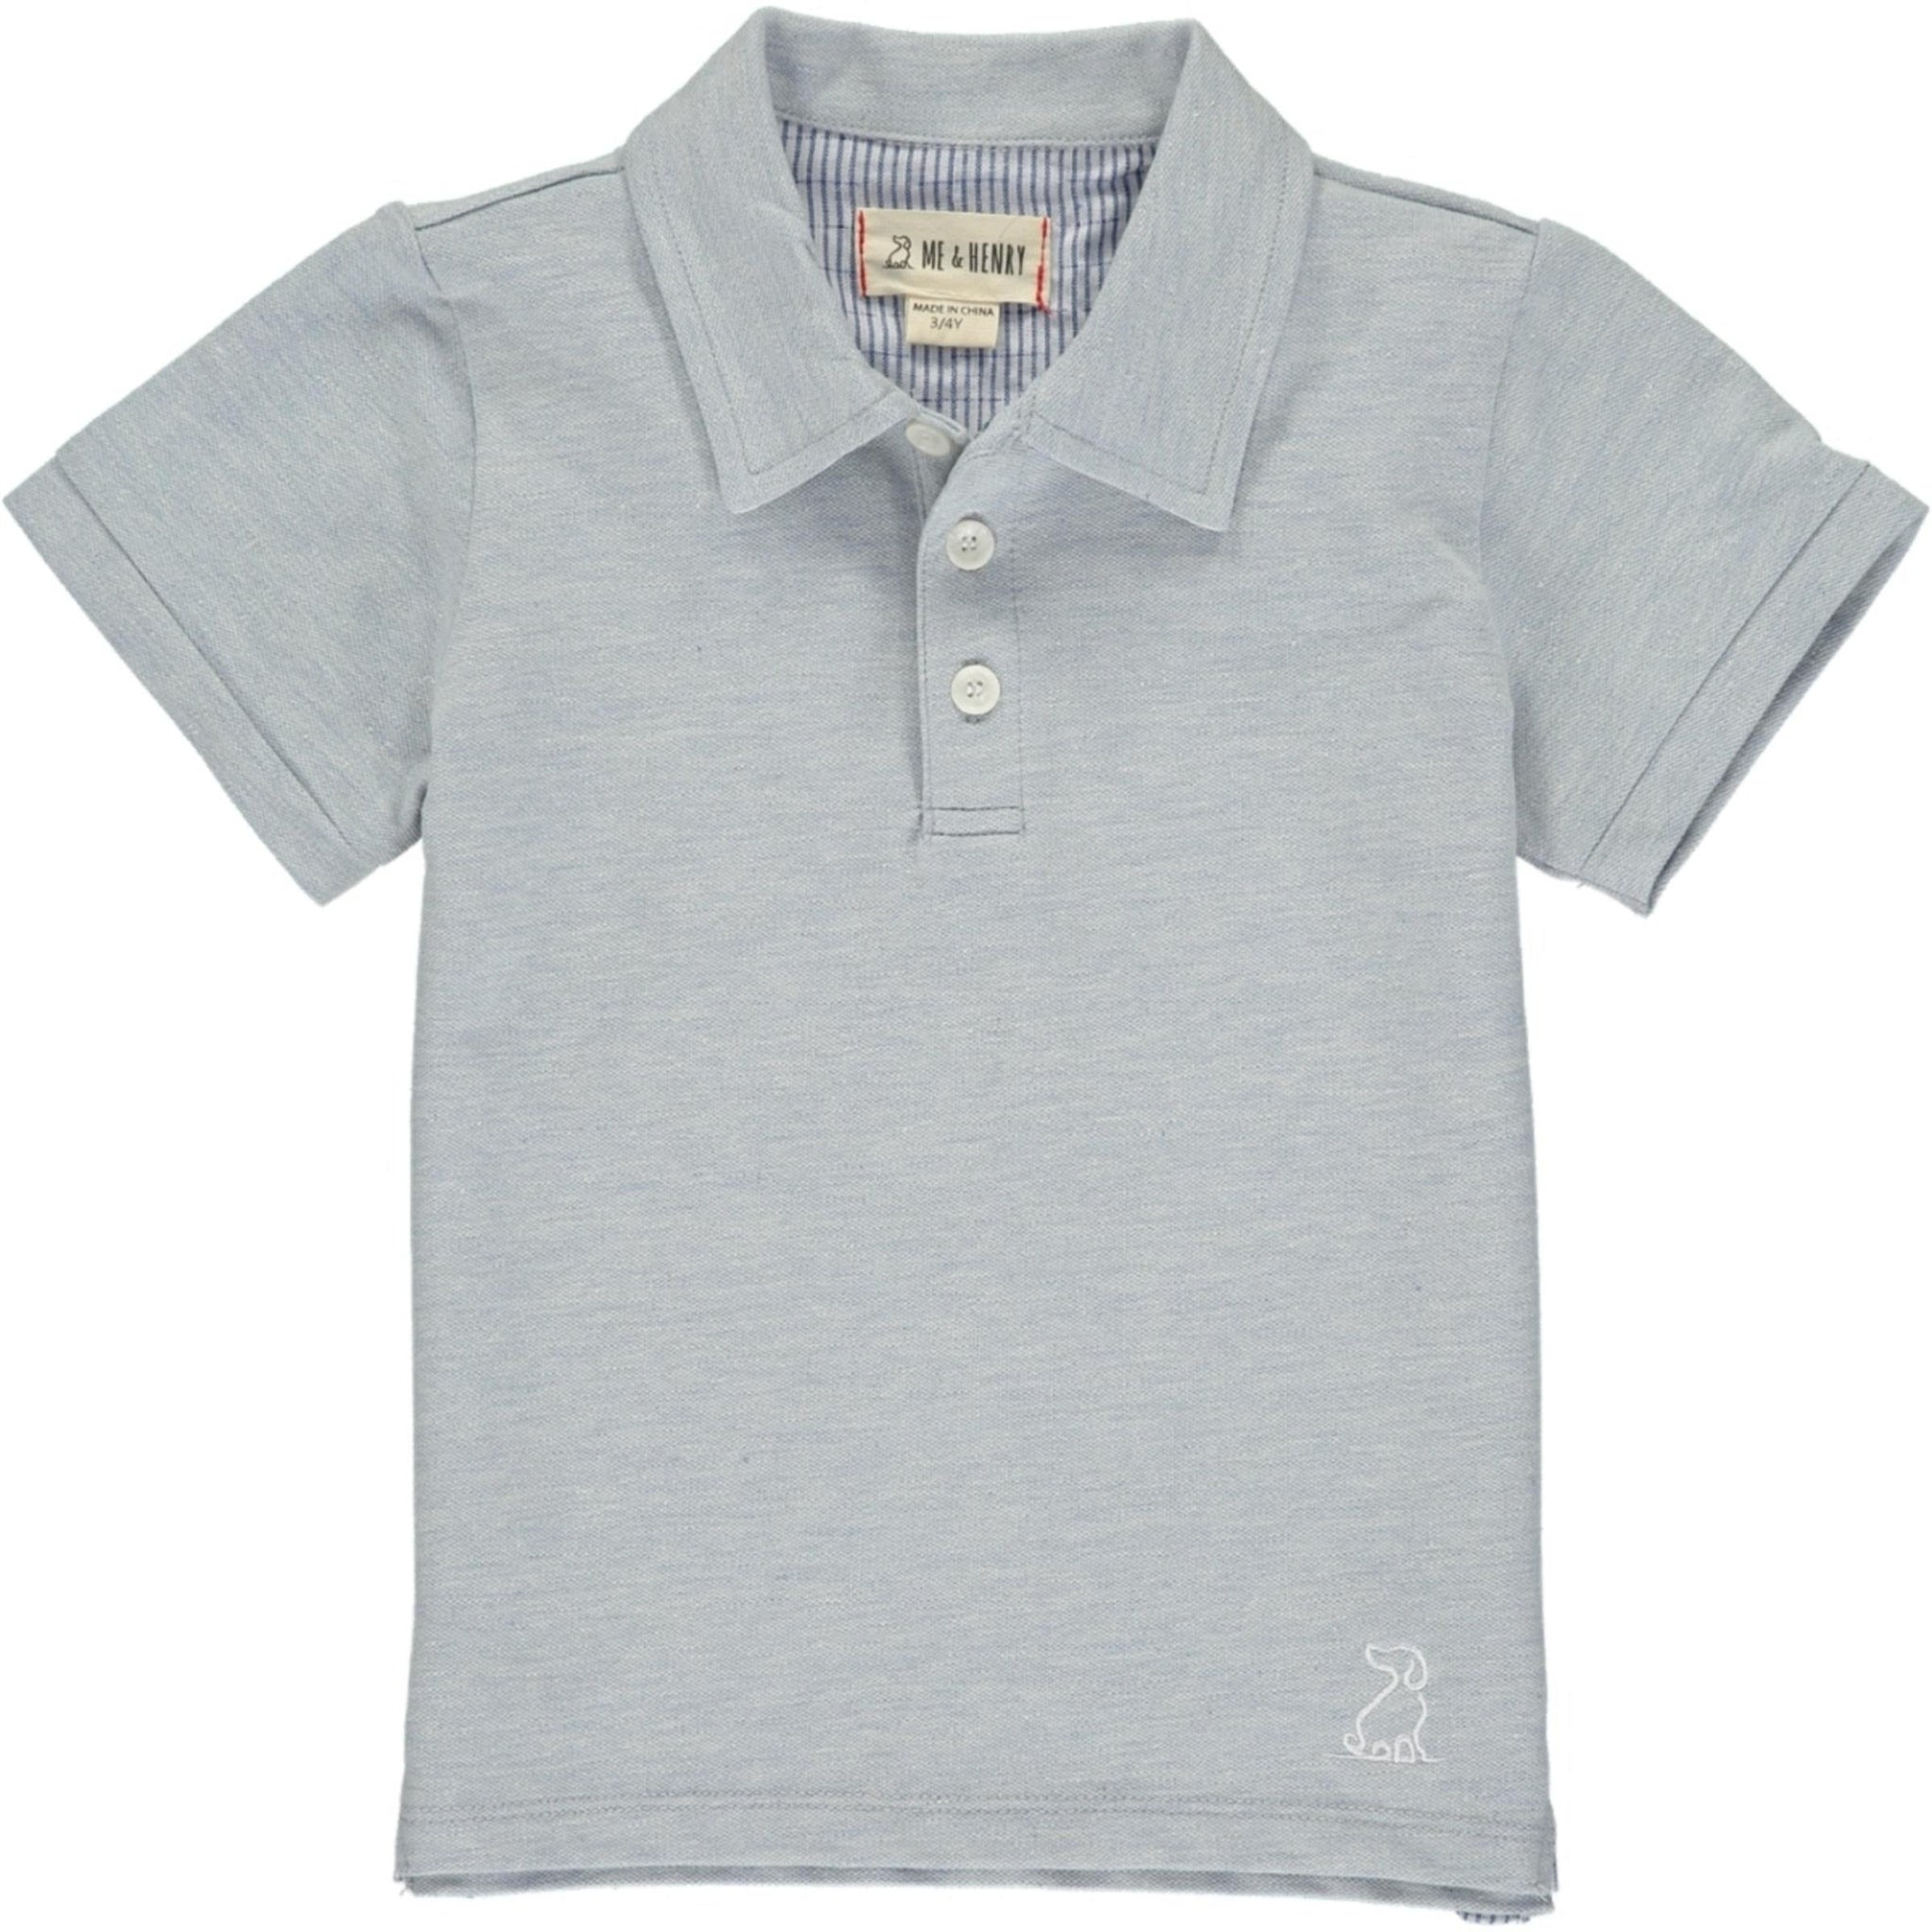 PALE BLUE COTTON PIQUE POLO